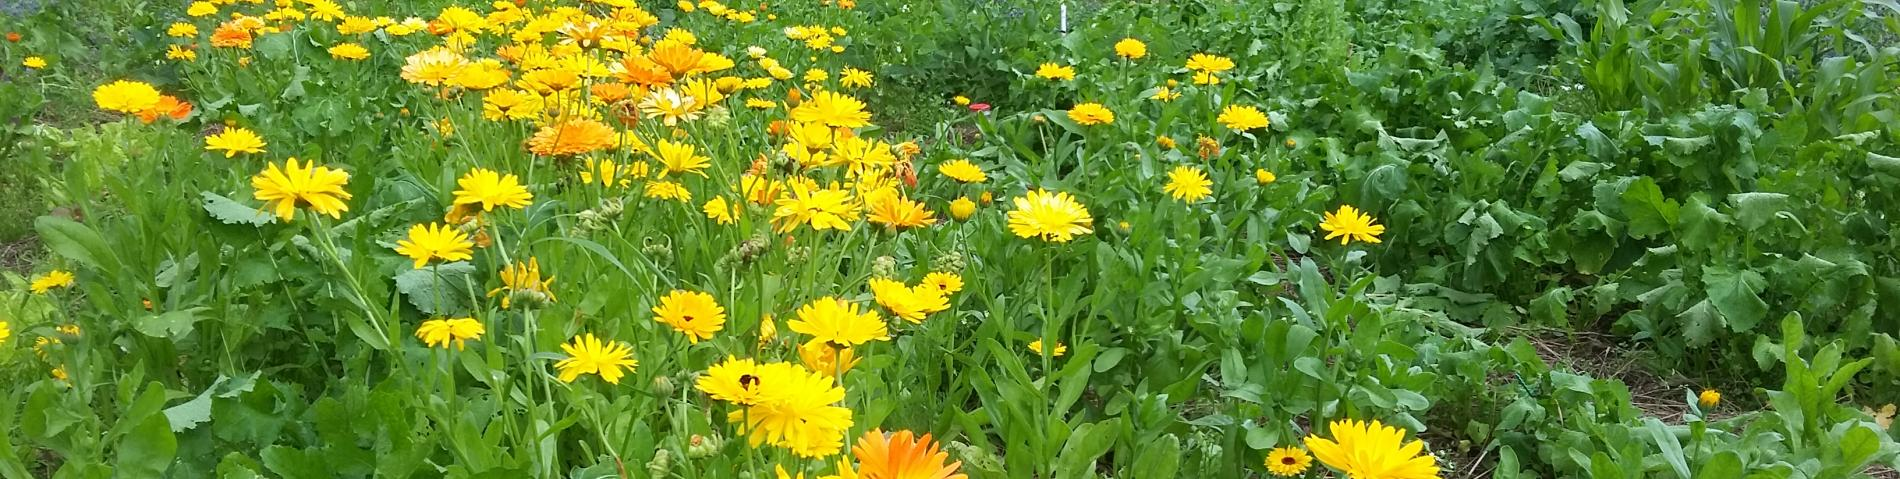 Calendula field with blooming flowers